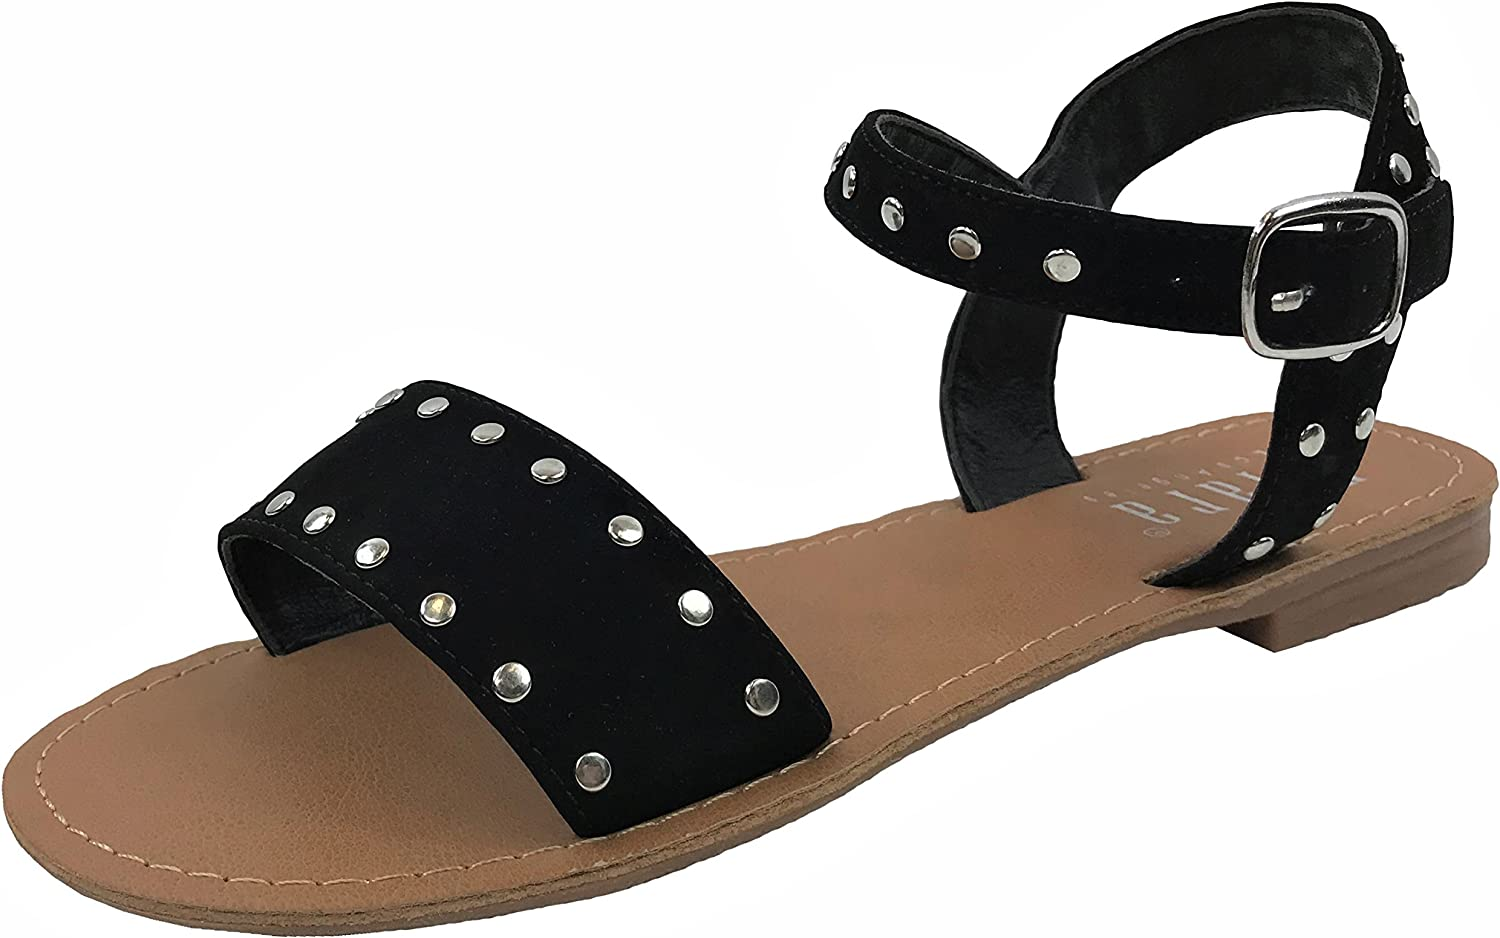 Womens Over The Toe Flat Summer Sandal with Ankle Strap